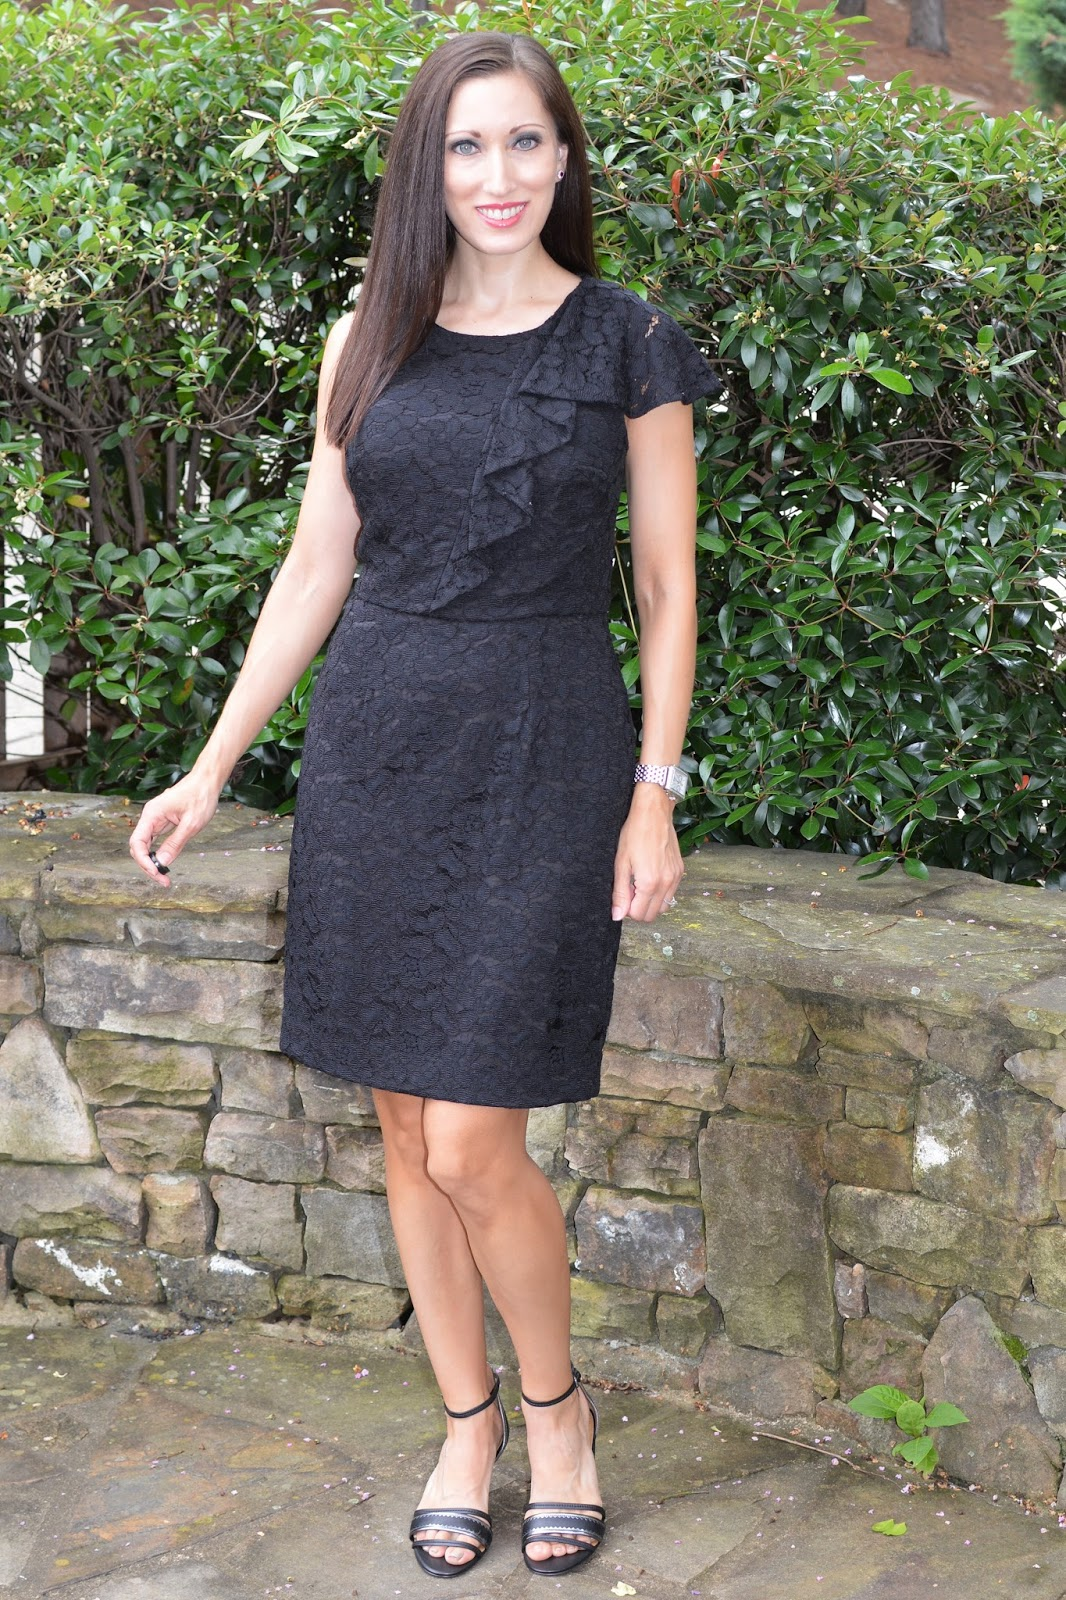 a68e6940dae Everyday Fashionista - Atlanta Blogger: In Search of the Best Deal